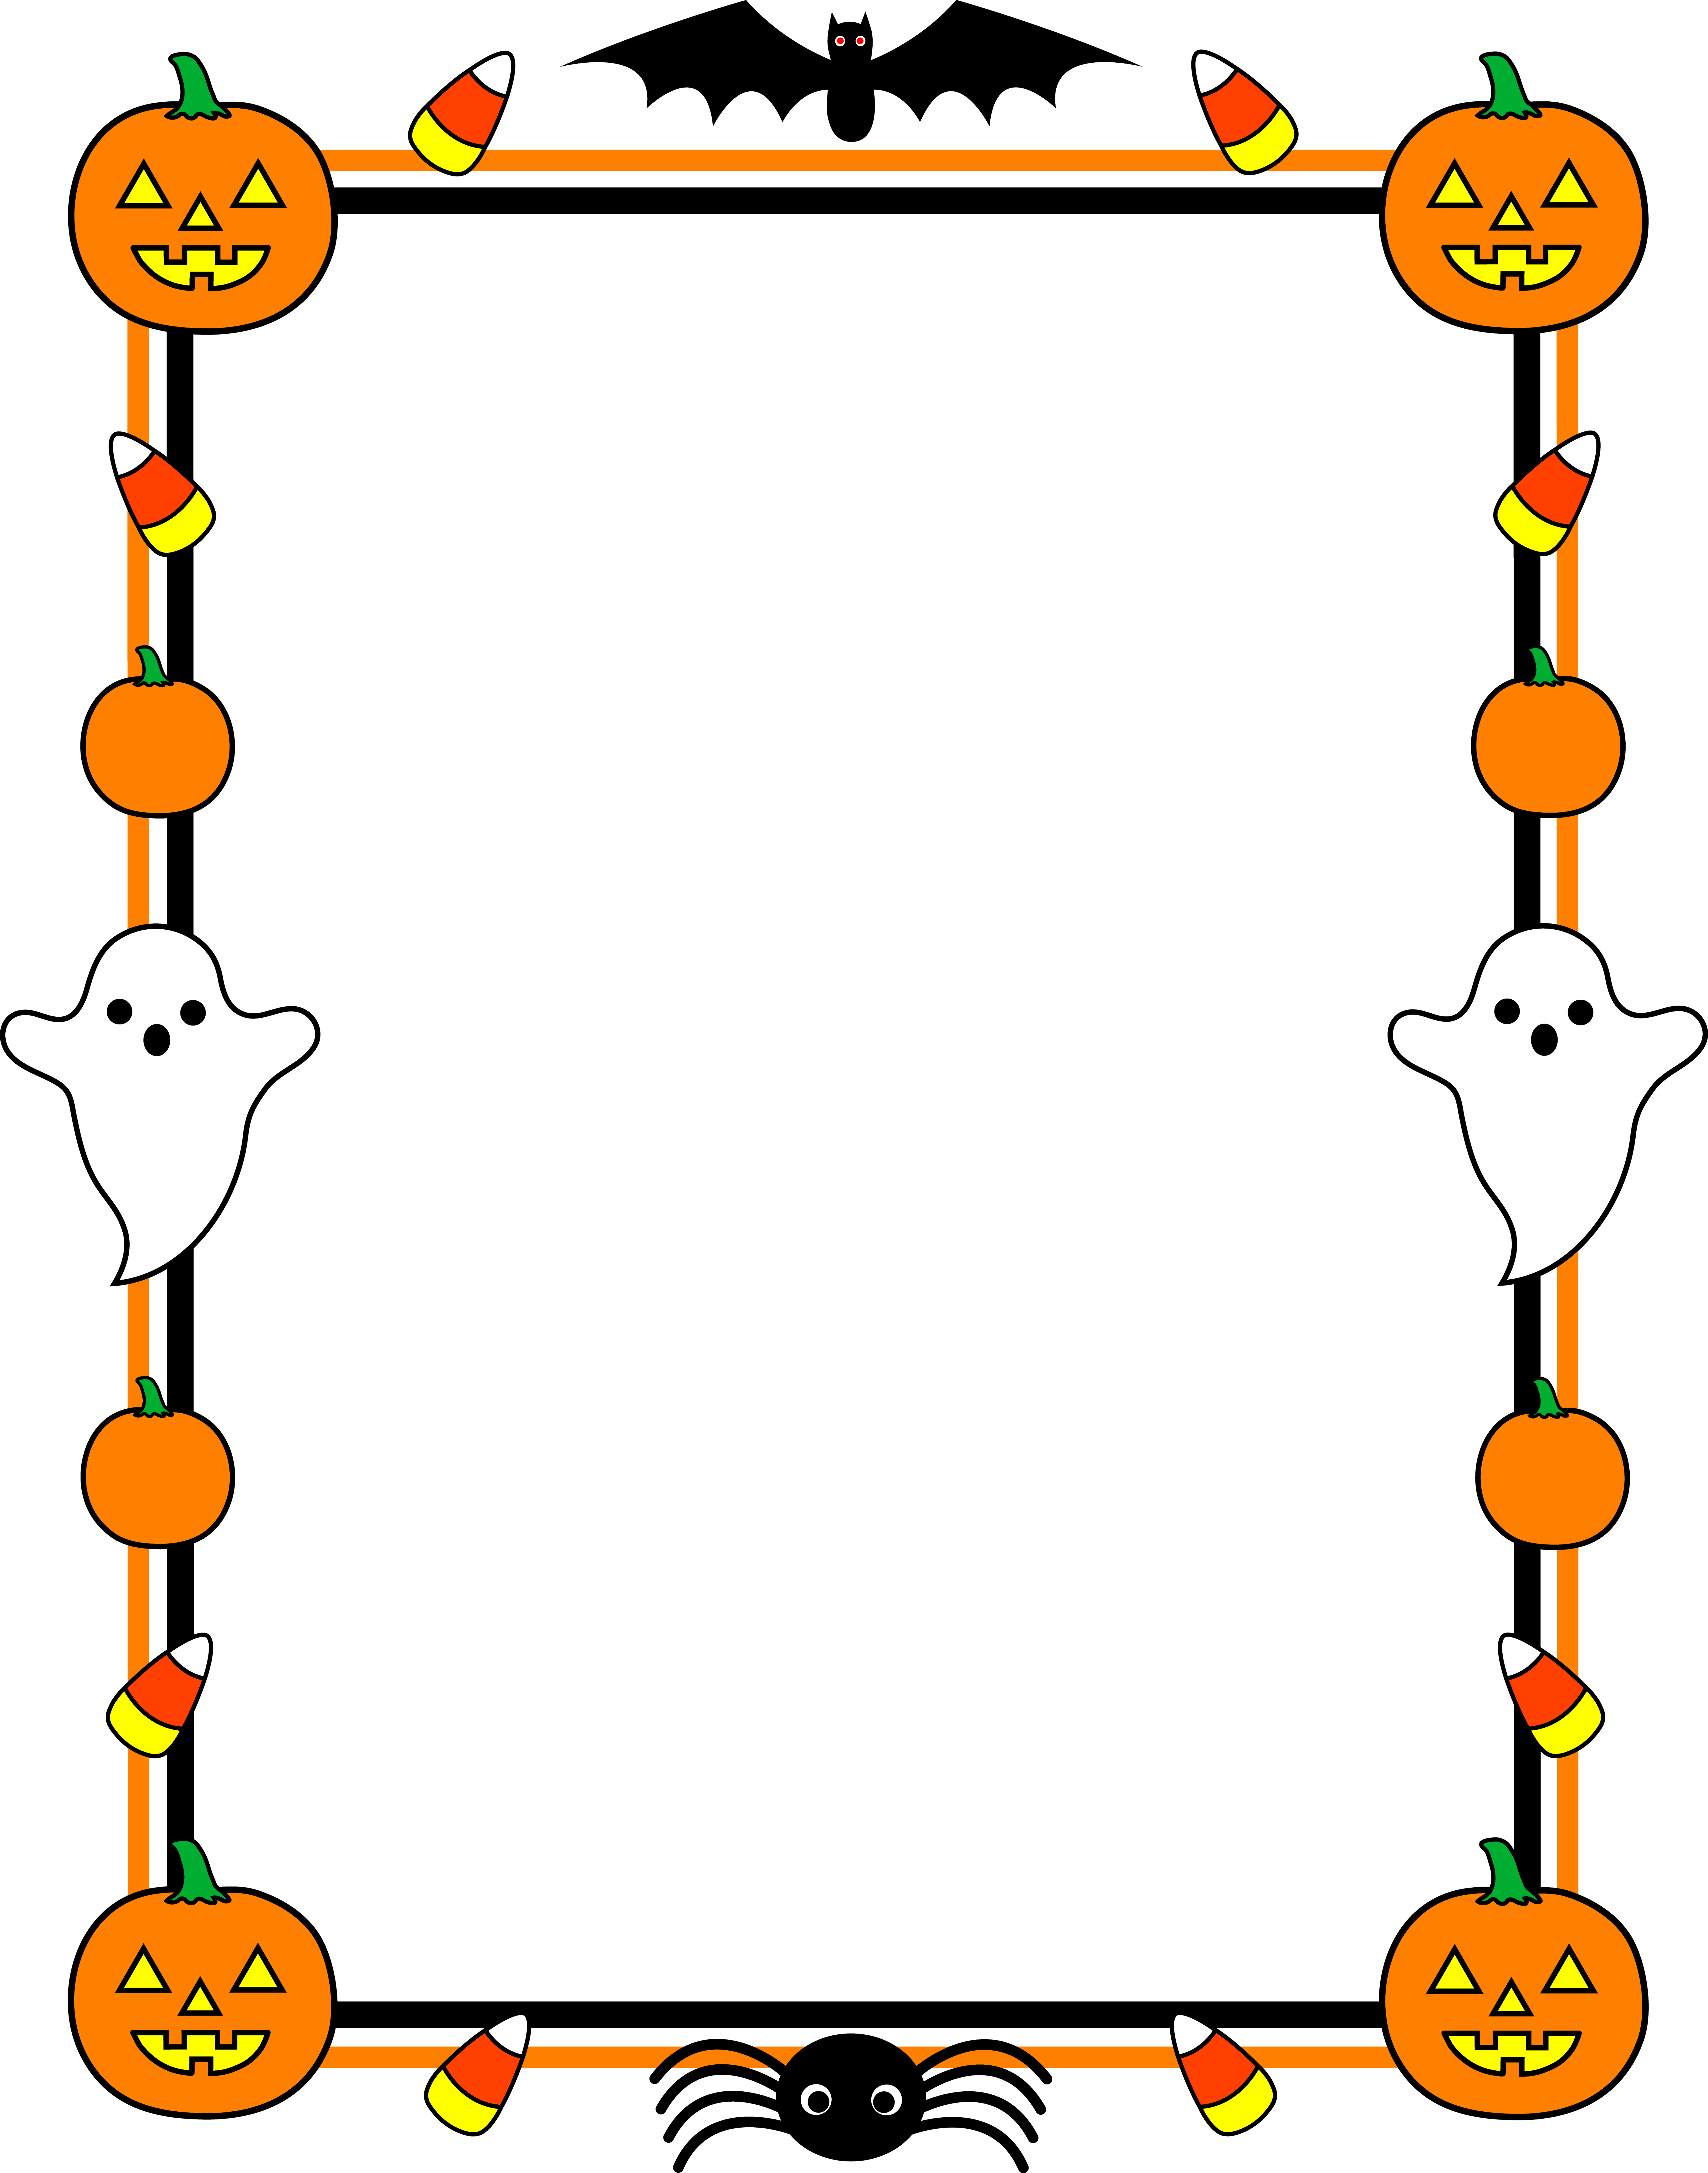 October pumpkin clipart banner transparent library October Candy Clipart banner transparent library